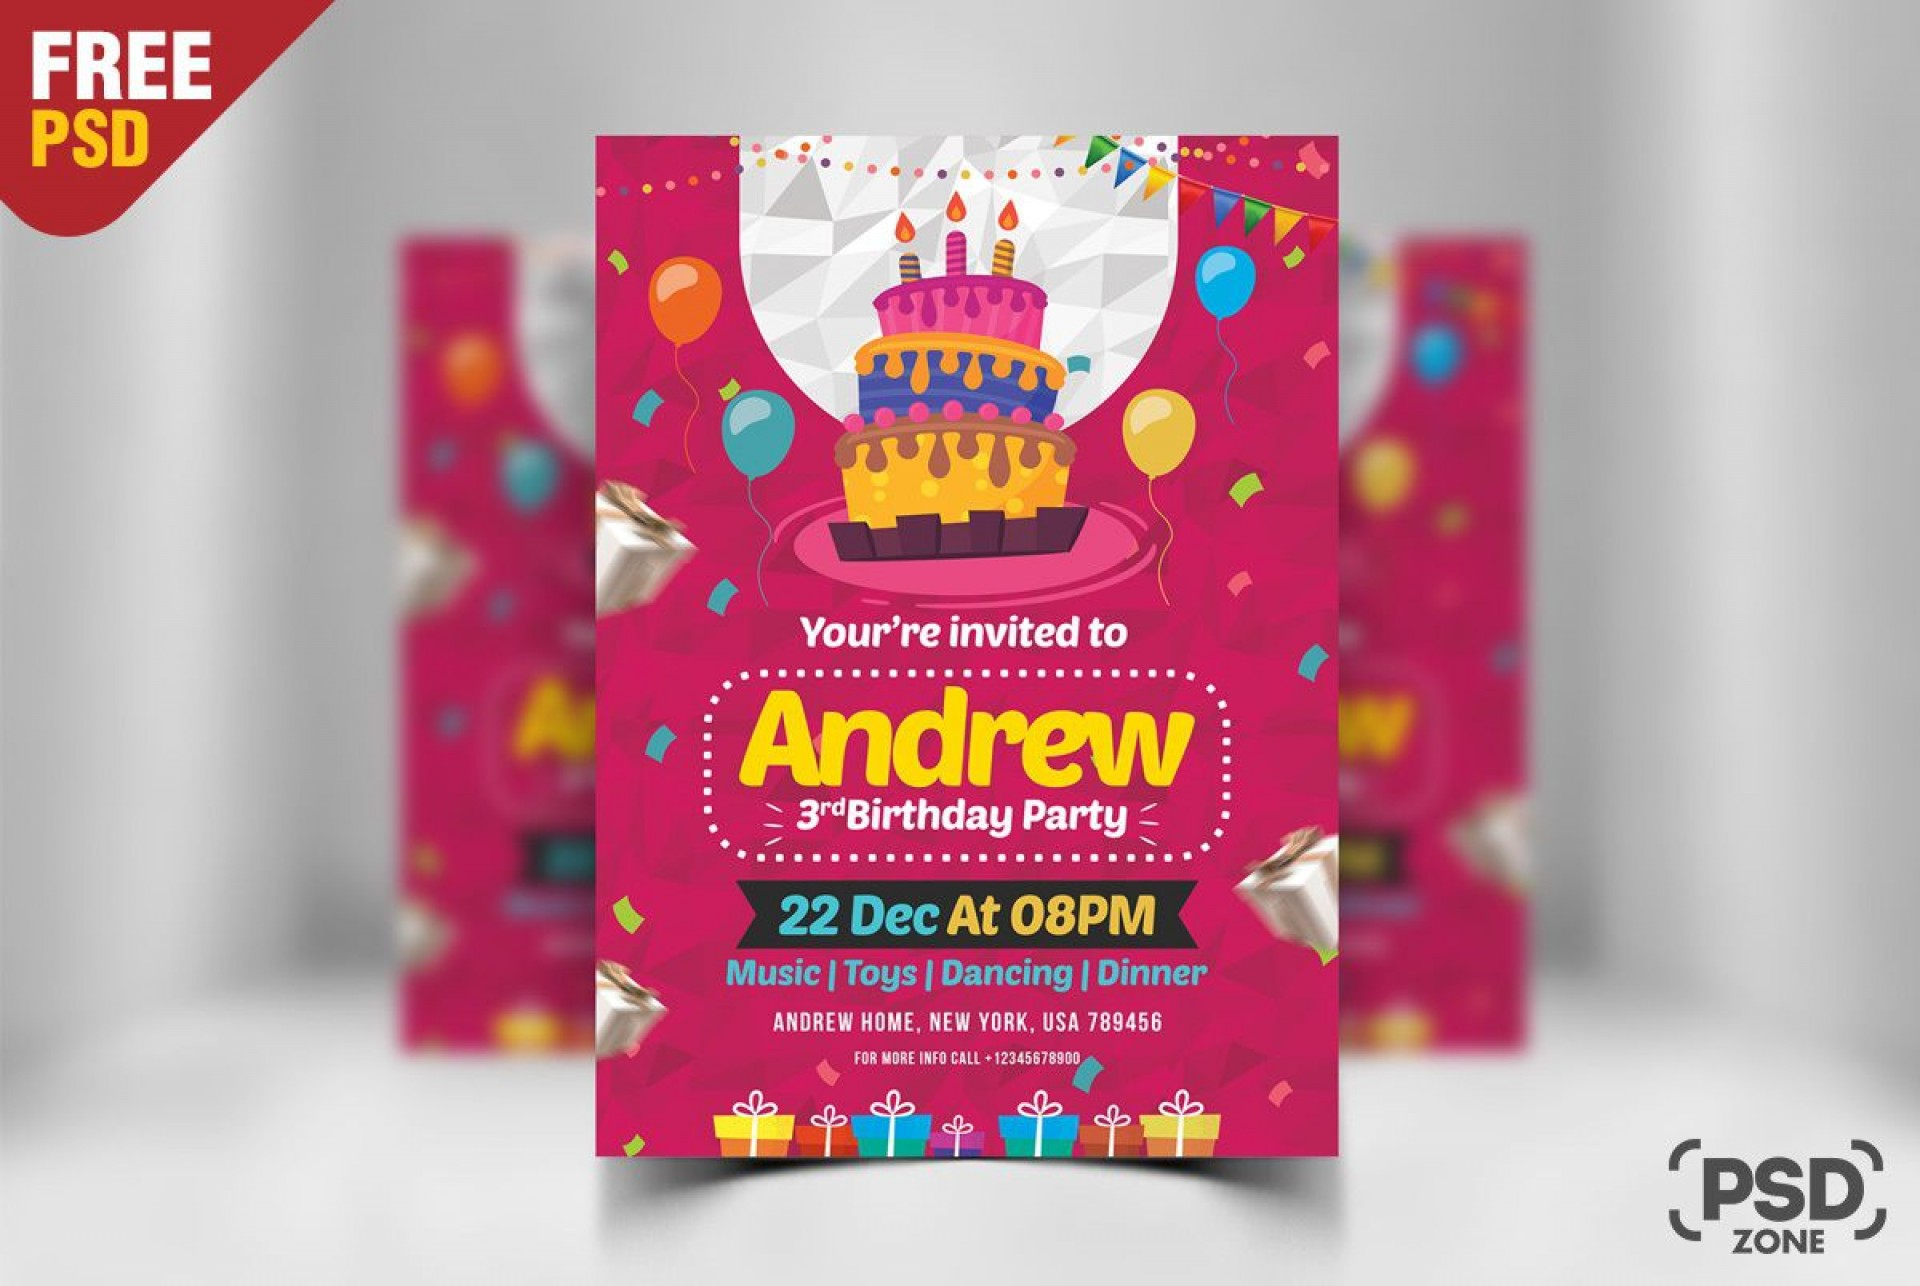 005 Unforgettable Birthday Party Invitation Flyer Template Free Download Image 1920